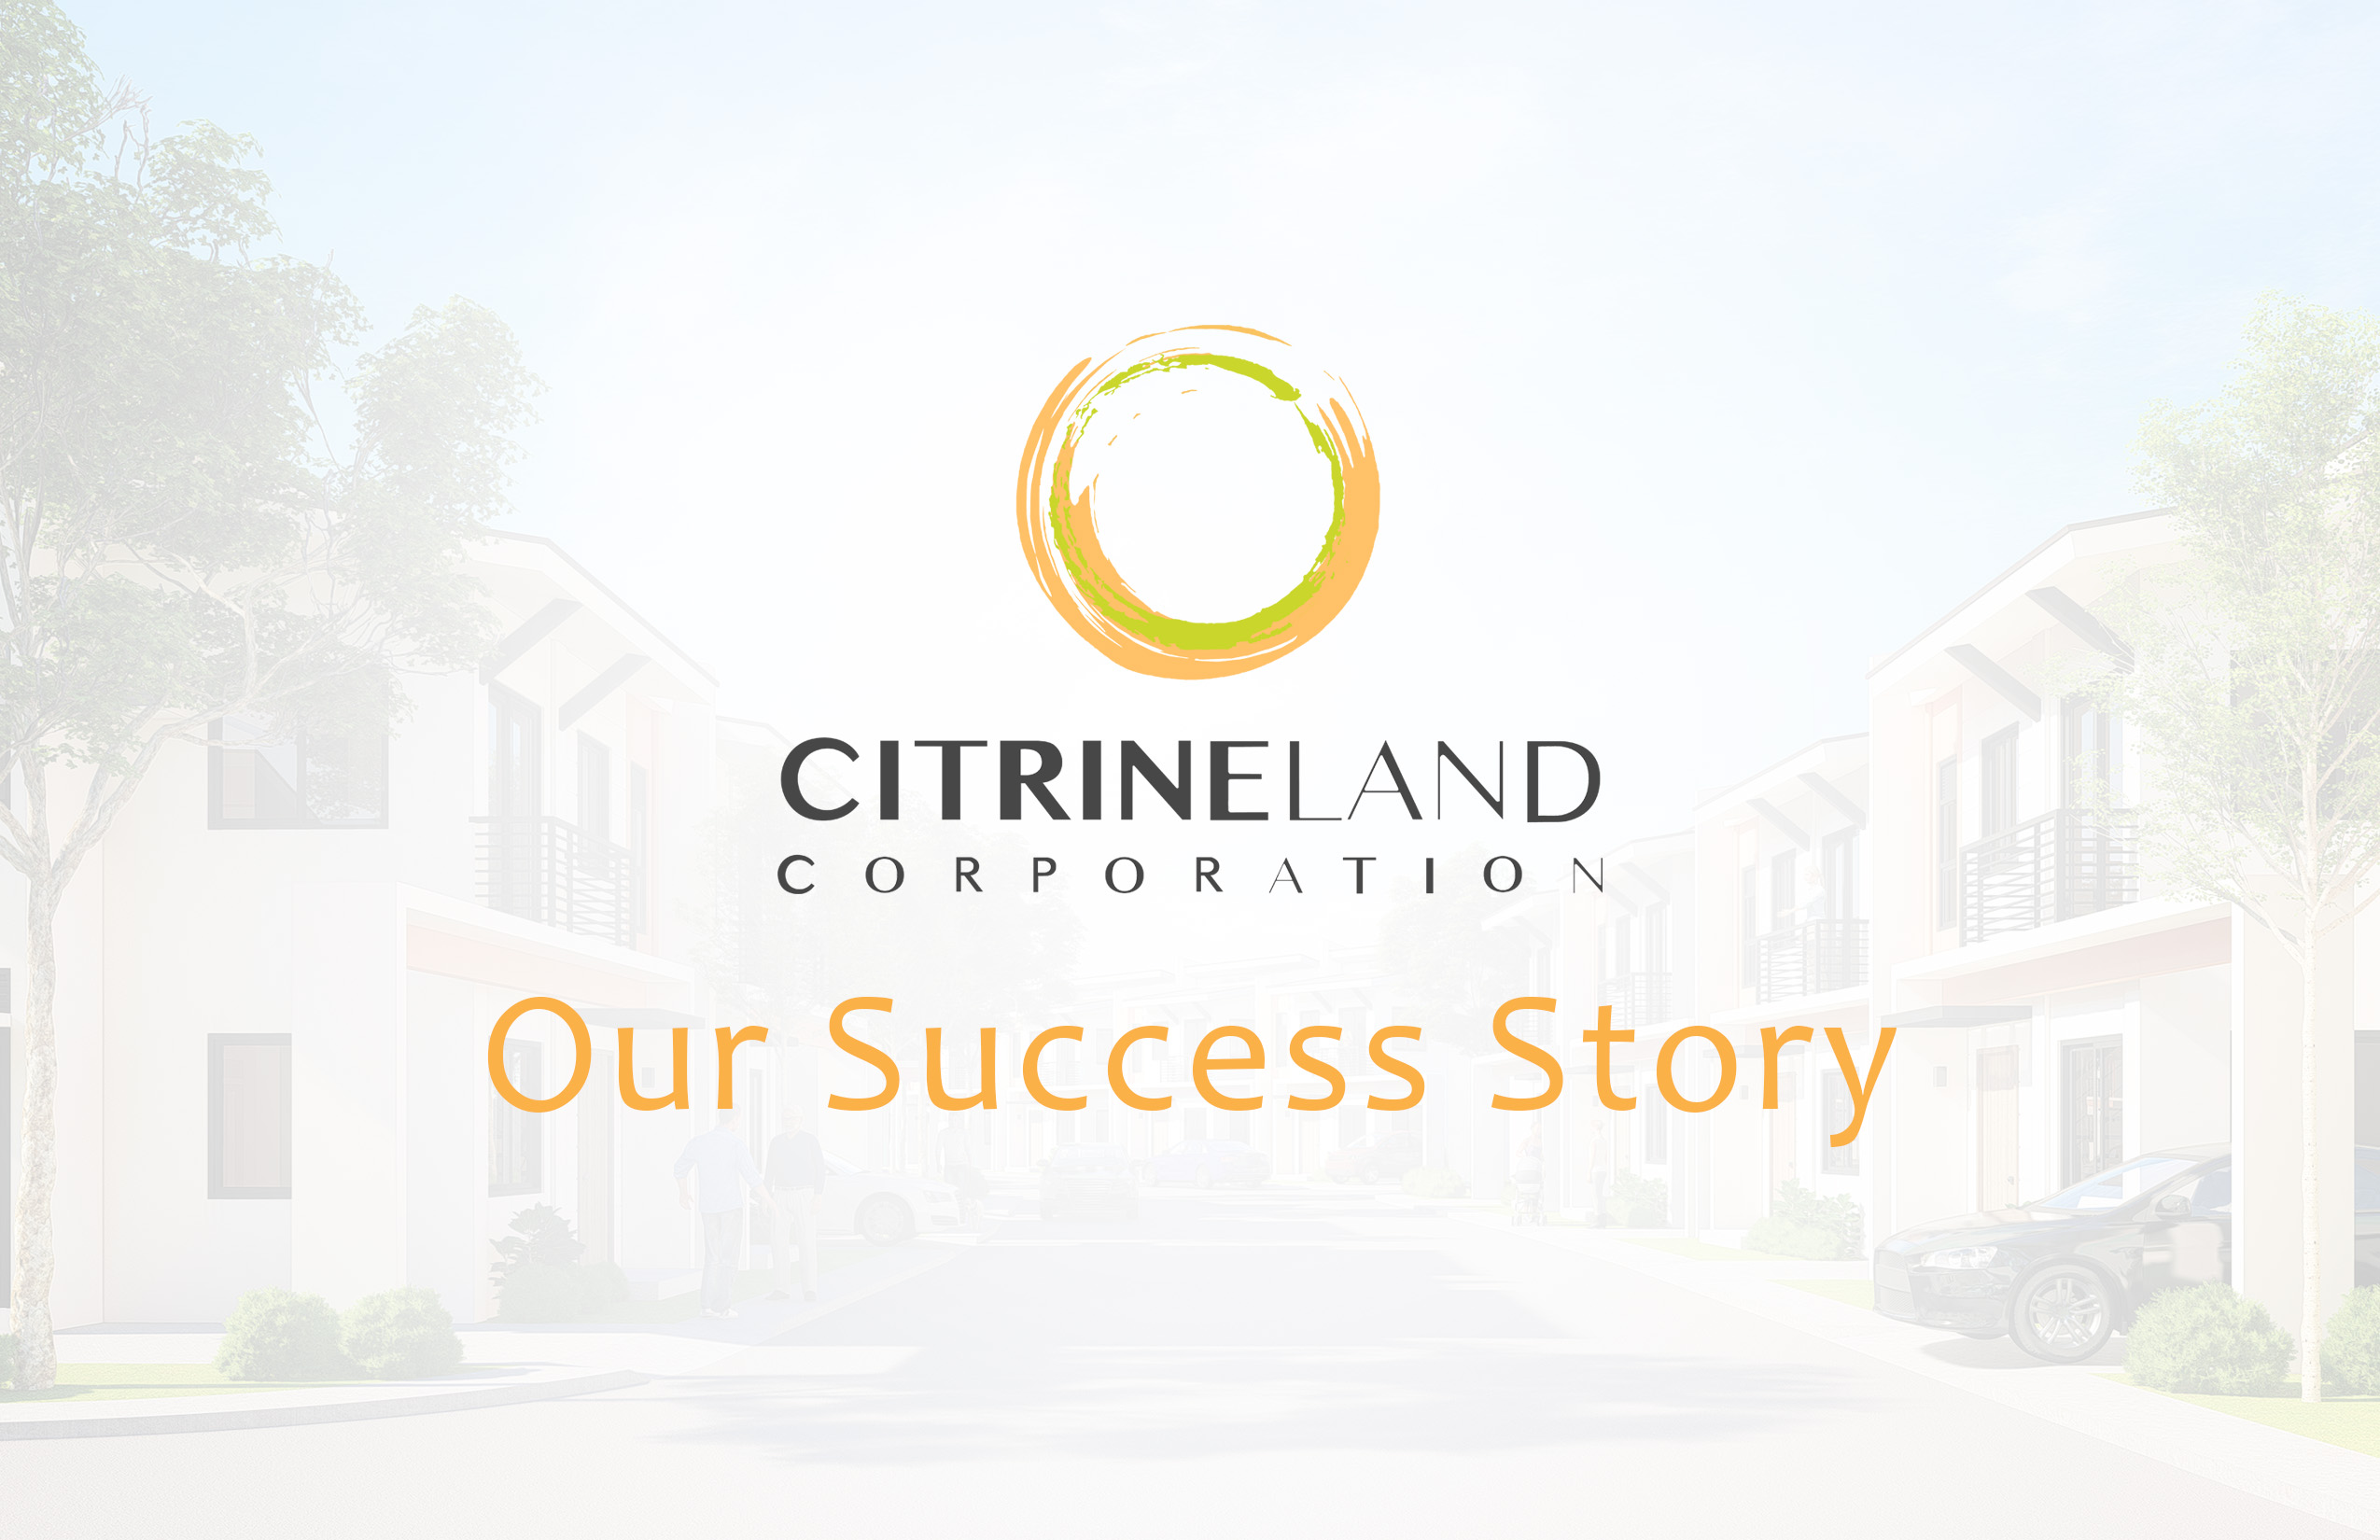 Citrineland Corporation: Four Aspects That Stitched Our Success Story